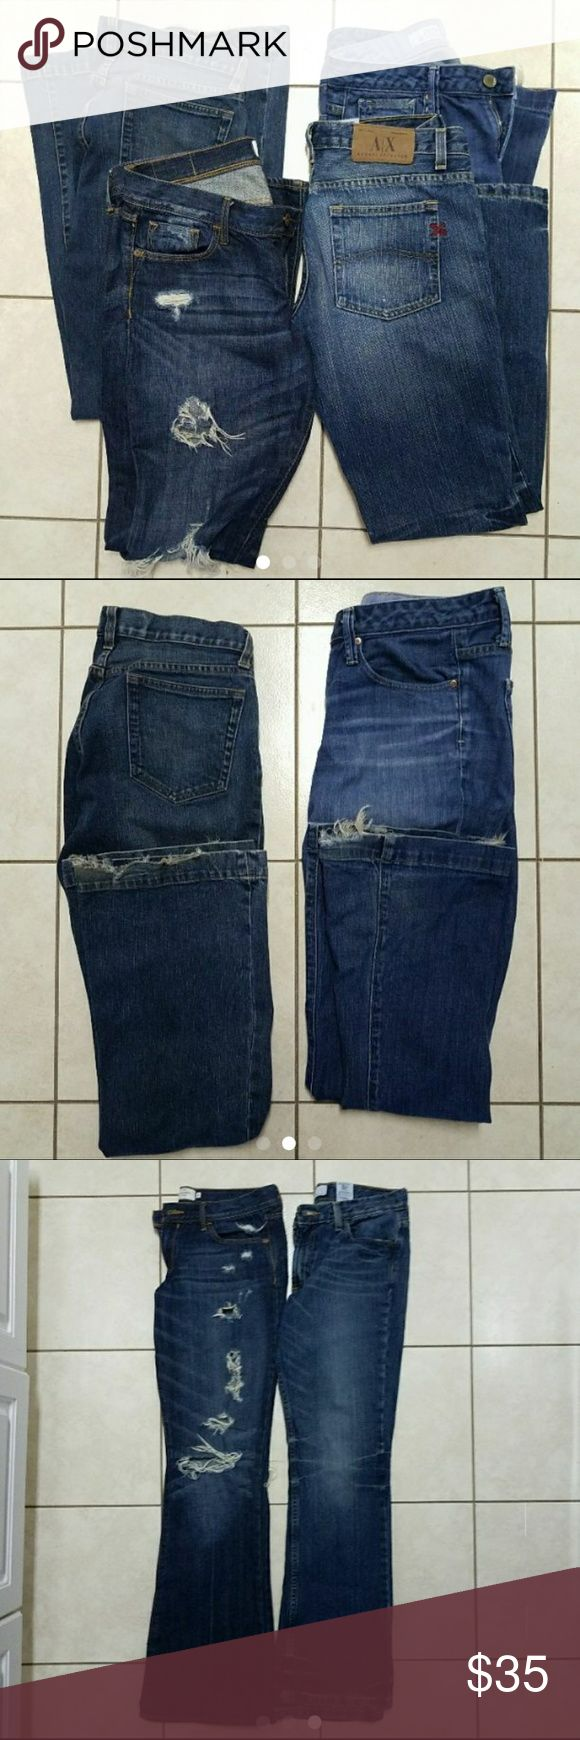 Women's jean bundle size 6 I have 2 two Gap long and Lean size 6 -  One Abercrombie and Fitch size 6 (with holes) worn like 4 times One Armani Exchange size 6 - never worn  I have overload in jeans - downsizing my jeans! Smoke and pet free home , I  take offers . Jeans